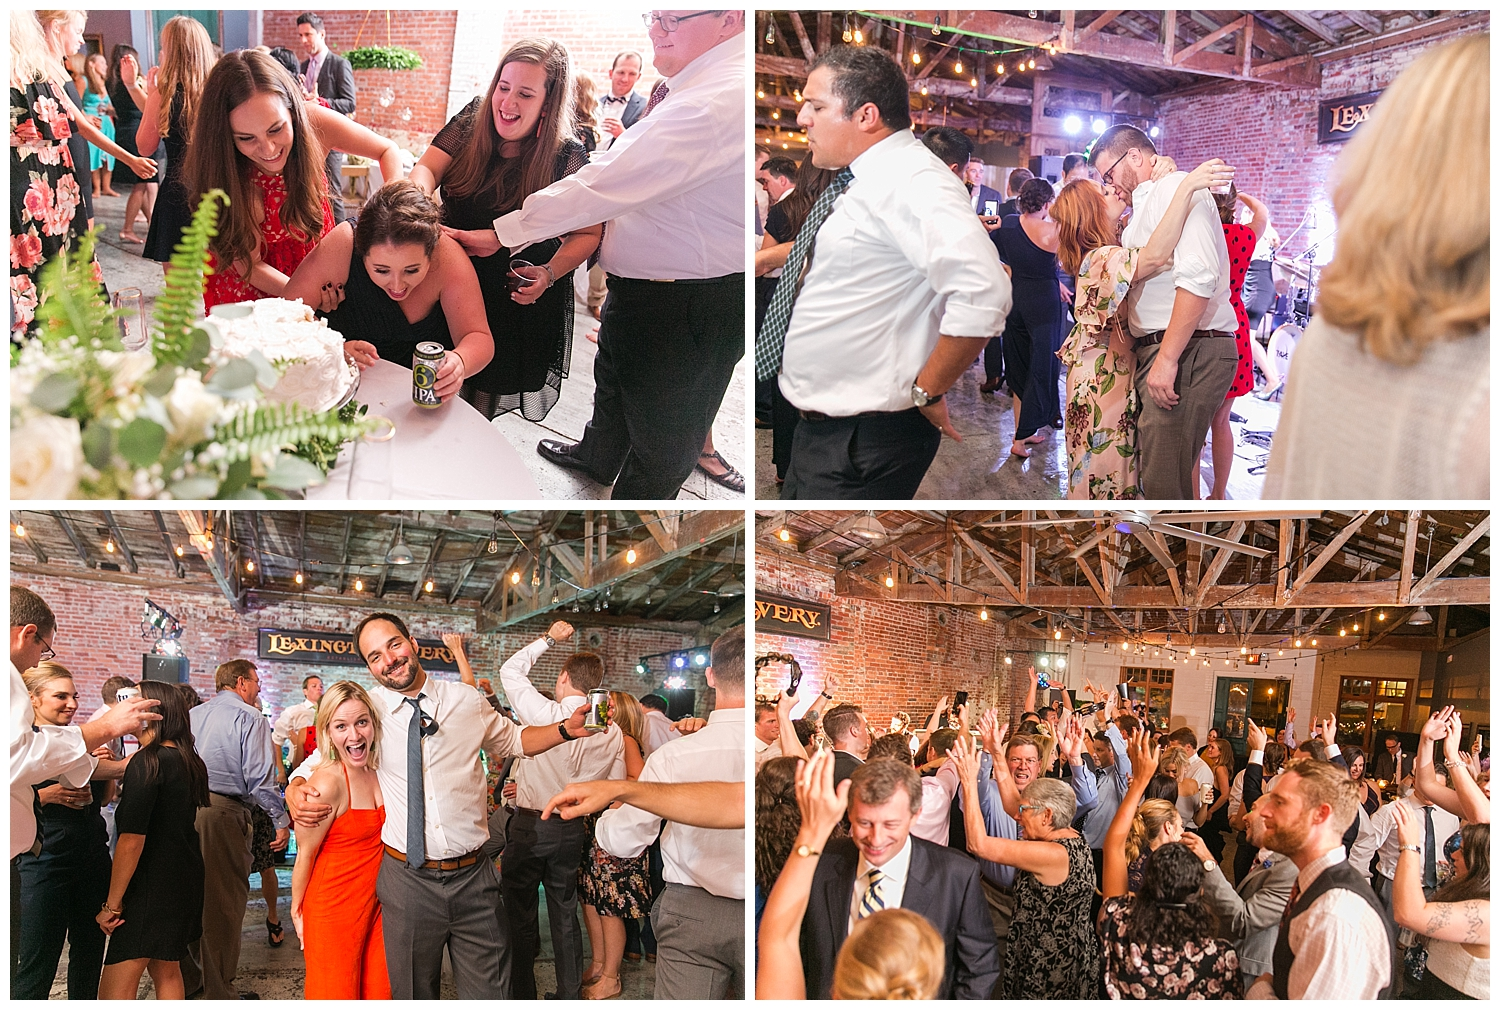 At one point, I did think a bridesmaid was going to unwilling have some cake.